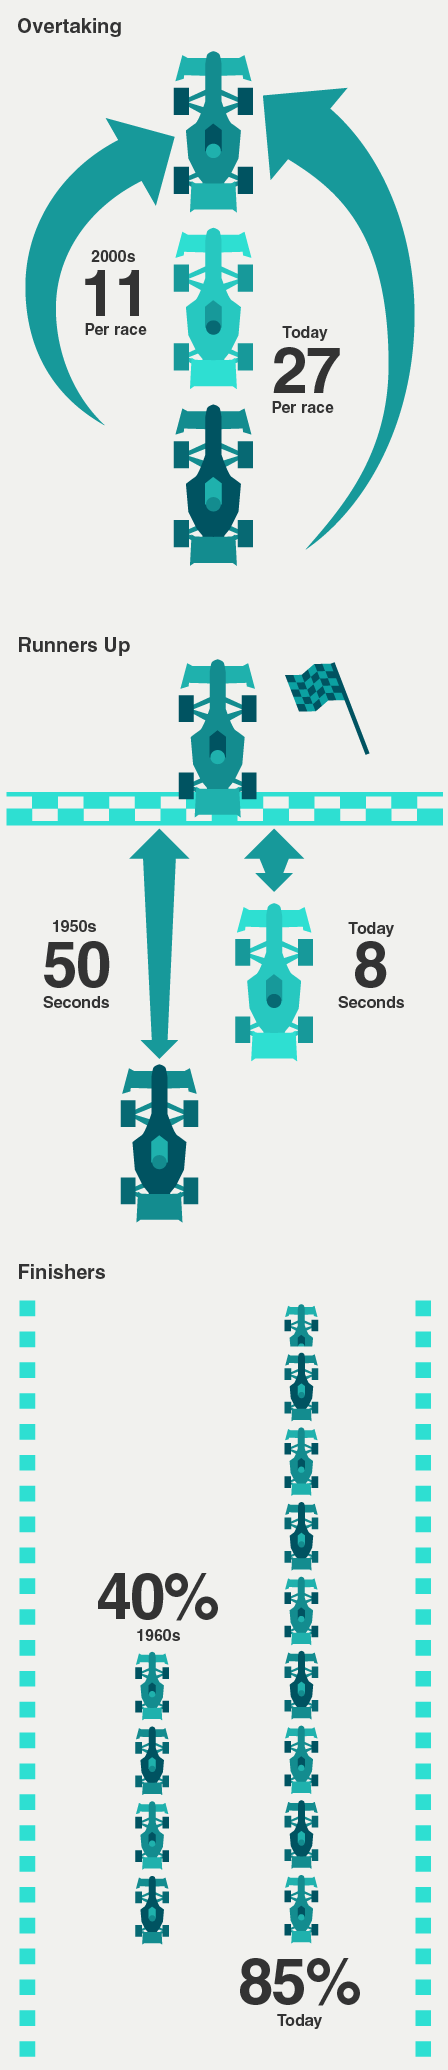 If some fans feel modern technology makes F1 less exciting, then statistics tell a different story.